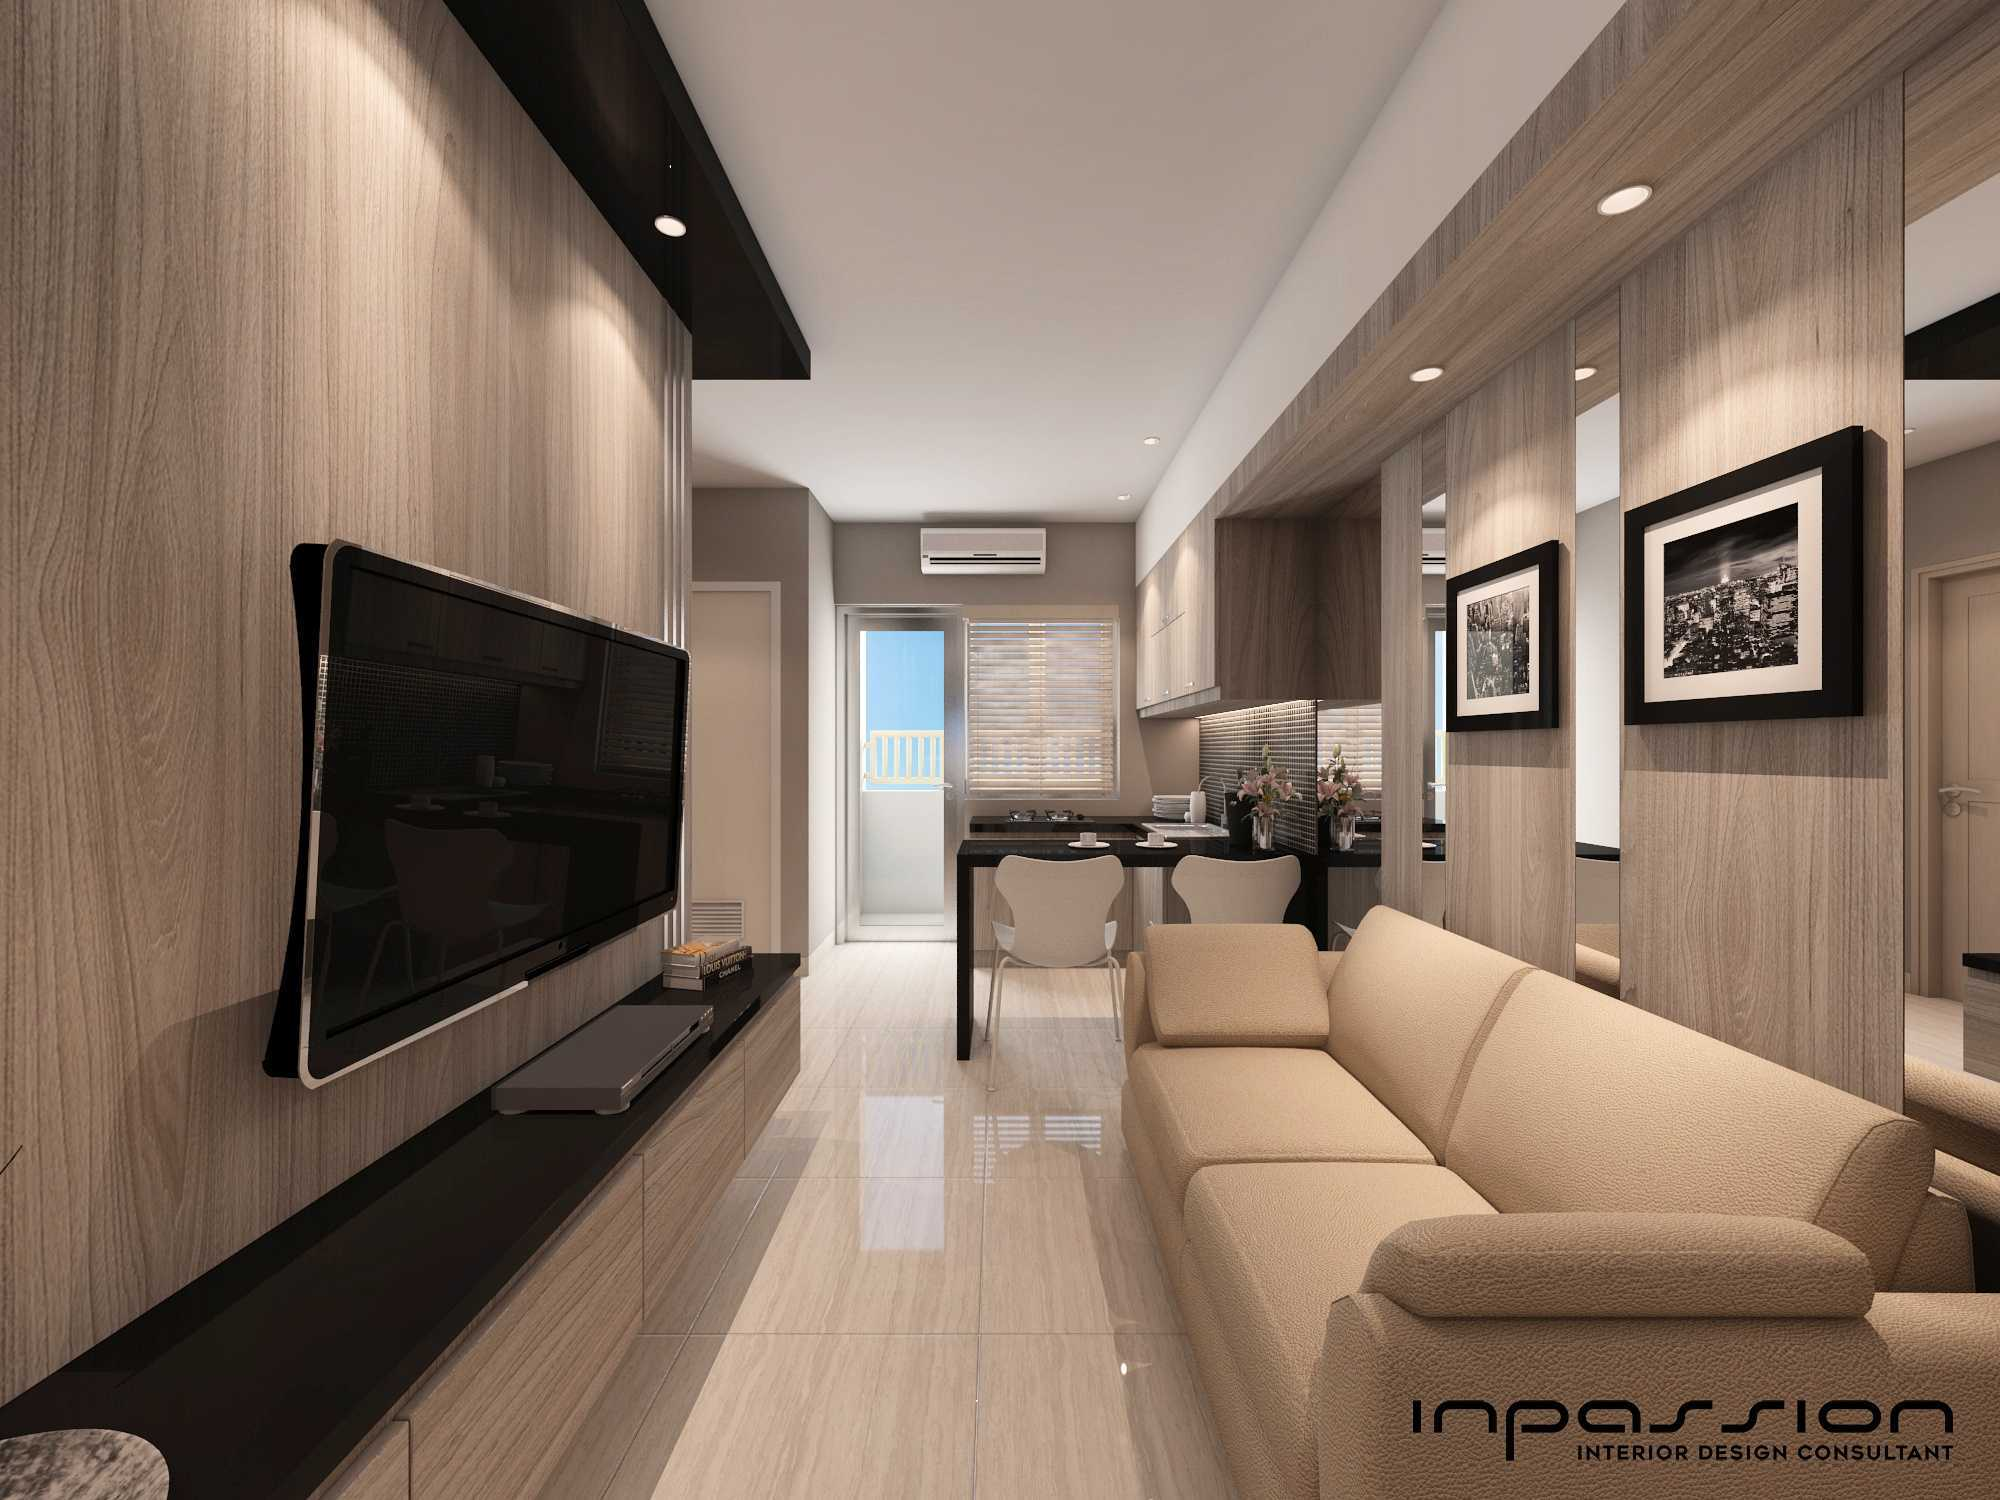 Inpassion Interior Design Educity Apartemen 3 Bedroom Surabaya City, East Java, Indonesia Surabaya City, East Java, Indonesia Img20170503150453137 Kontemporer  31364